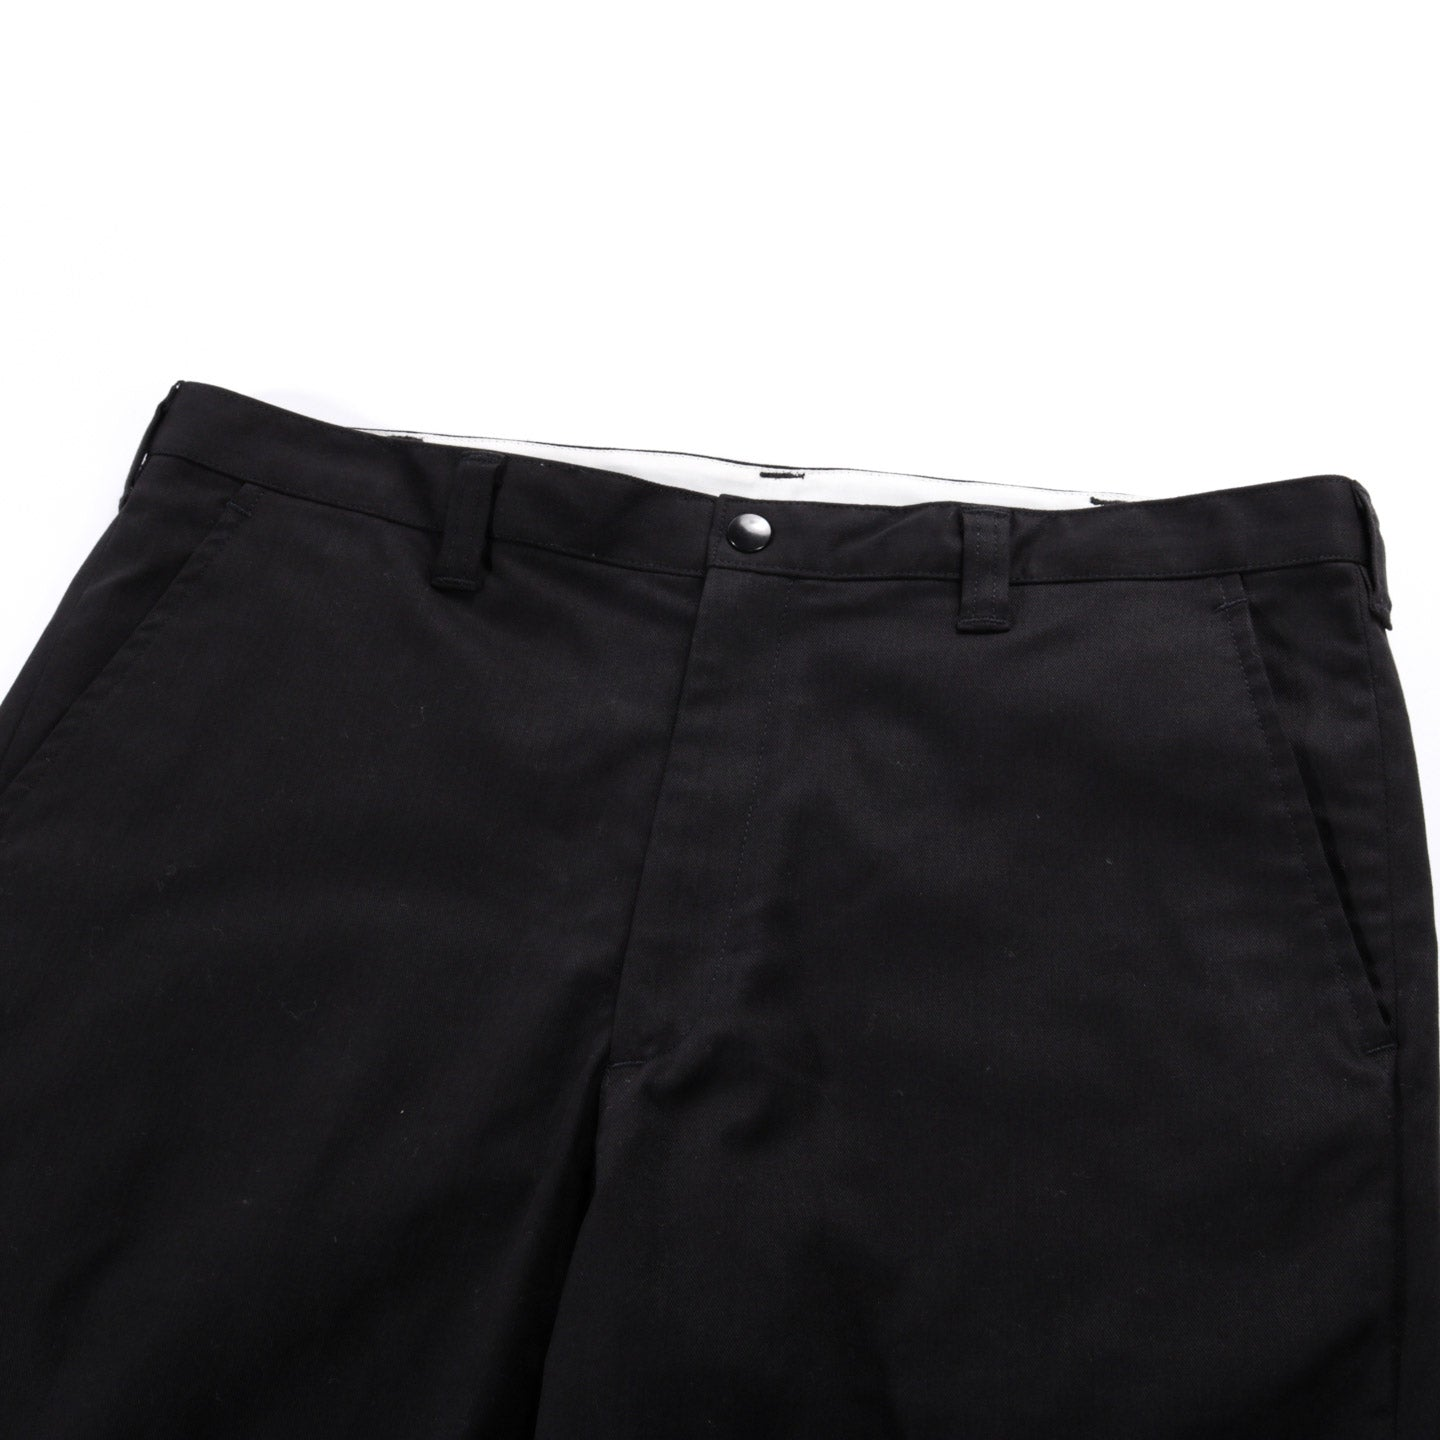 N.HOOLYWOOD 2202-CP04 TAPERED CHINO BLACK